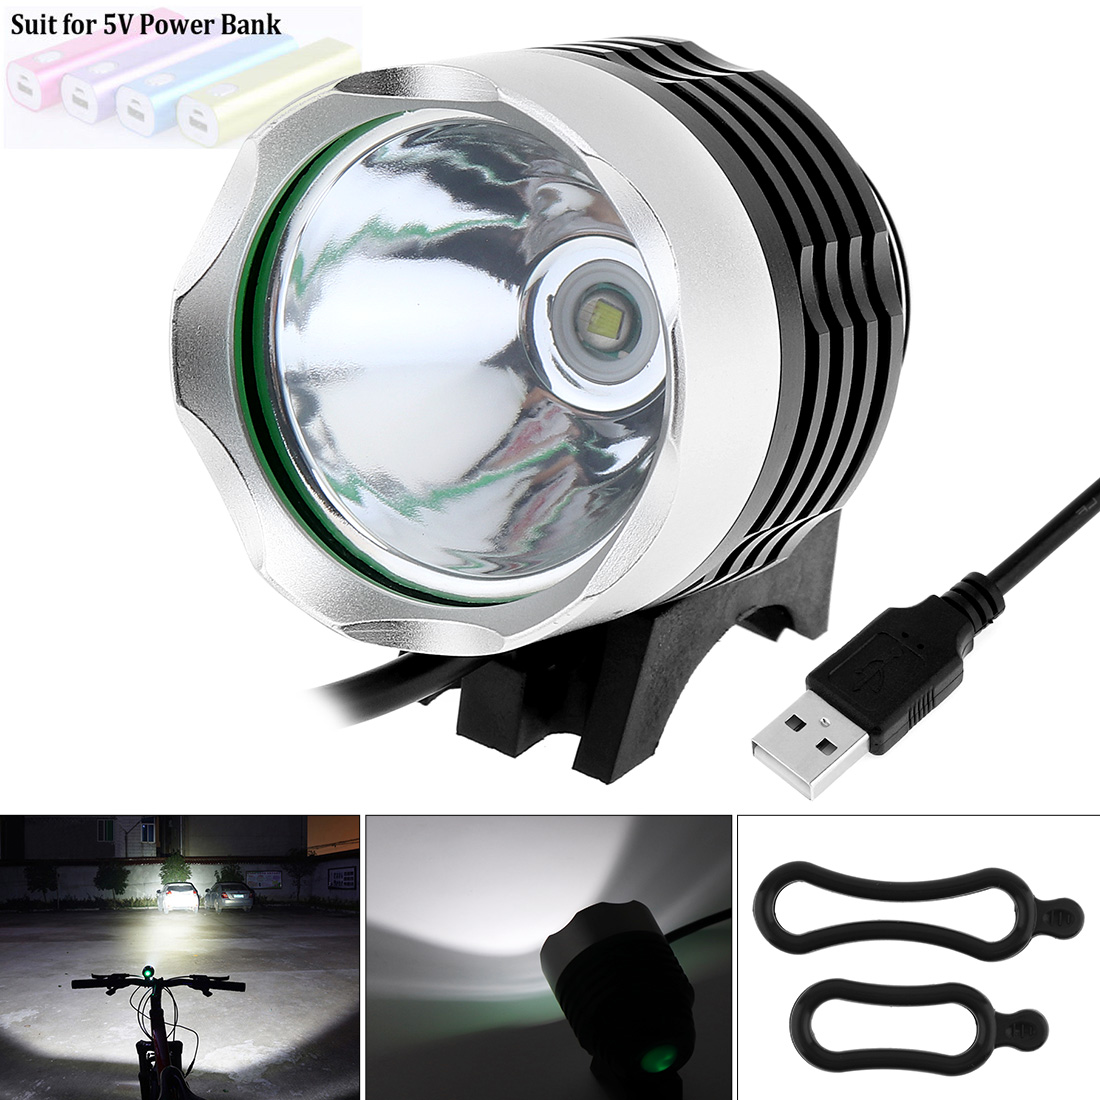 Securitying Selling 1200 Lumen XM-L T6 LED Bicycle Light Bike Light  For Bike Cycling Bike Bicycle Waterpoof Front Light & USB